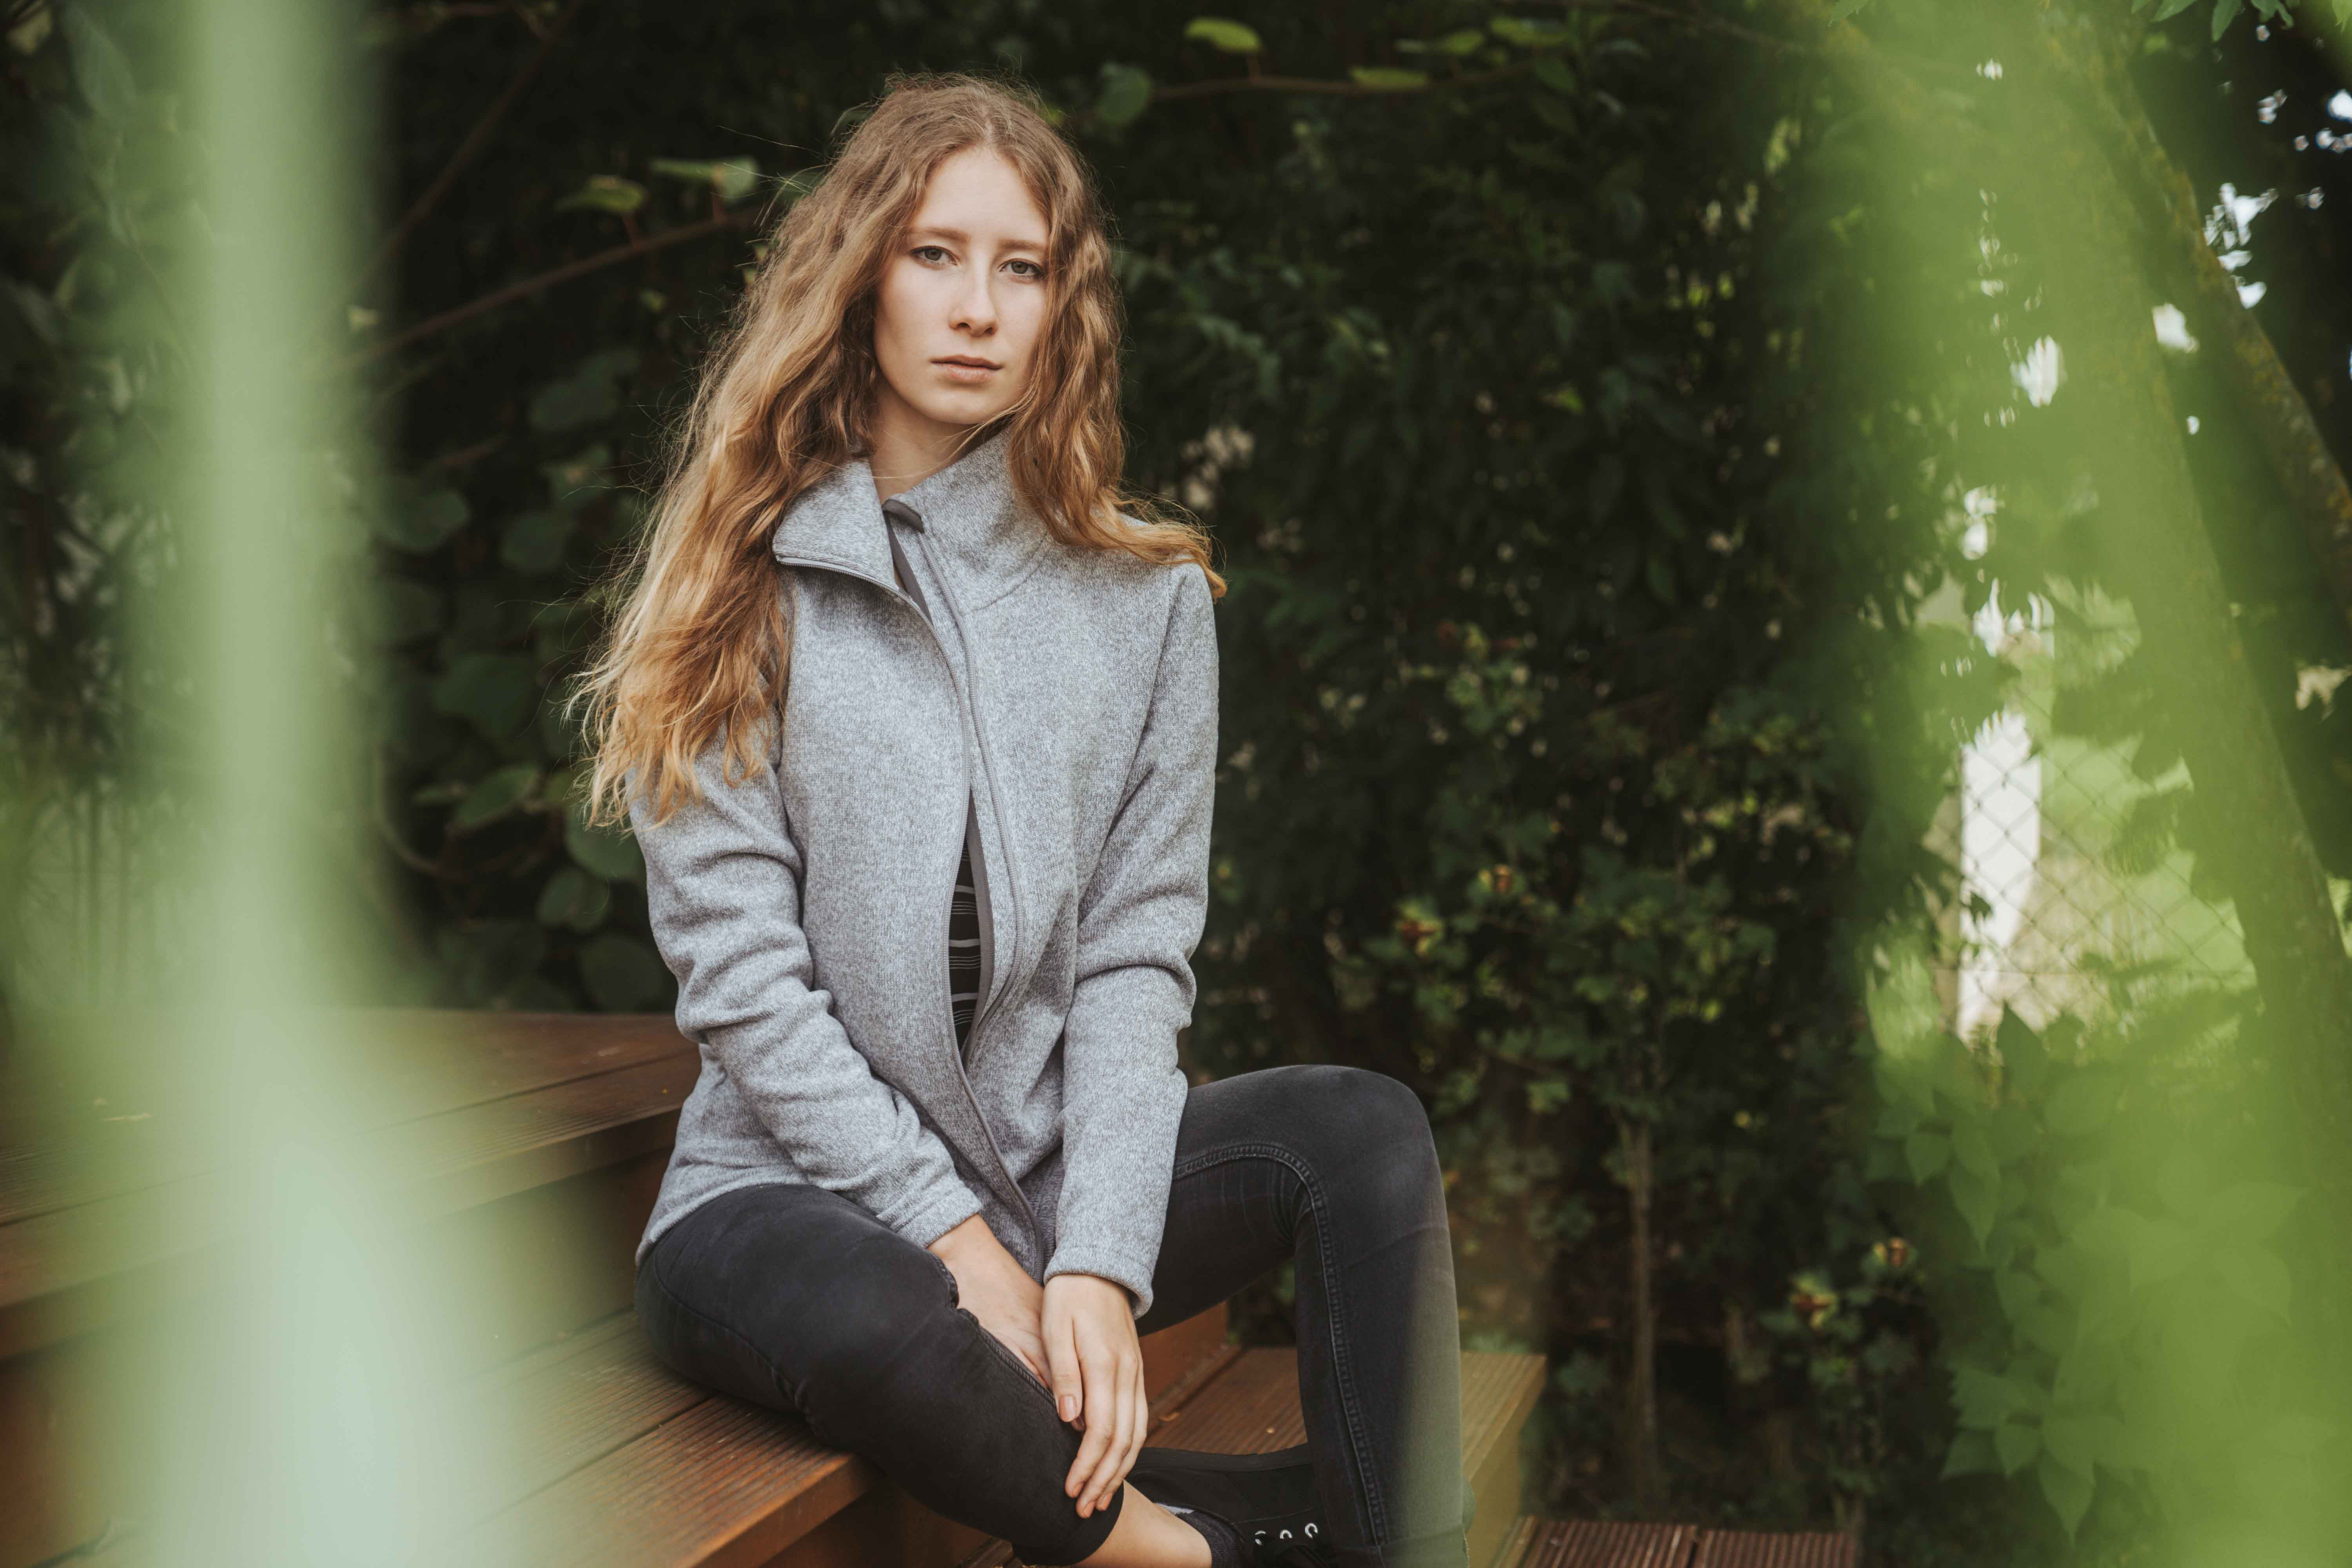 Girl sitting on stairs wearing a grey jacket by Elkline